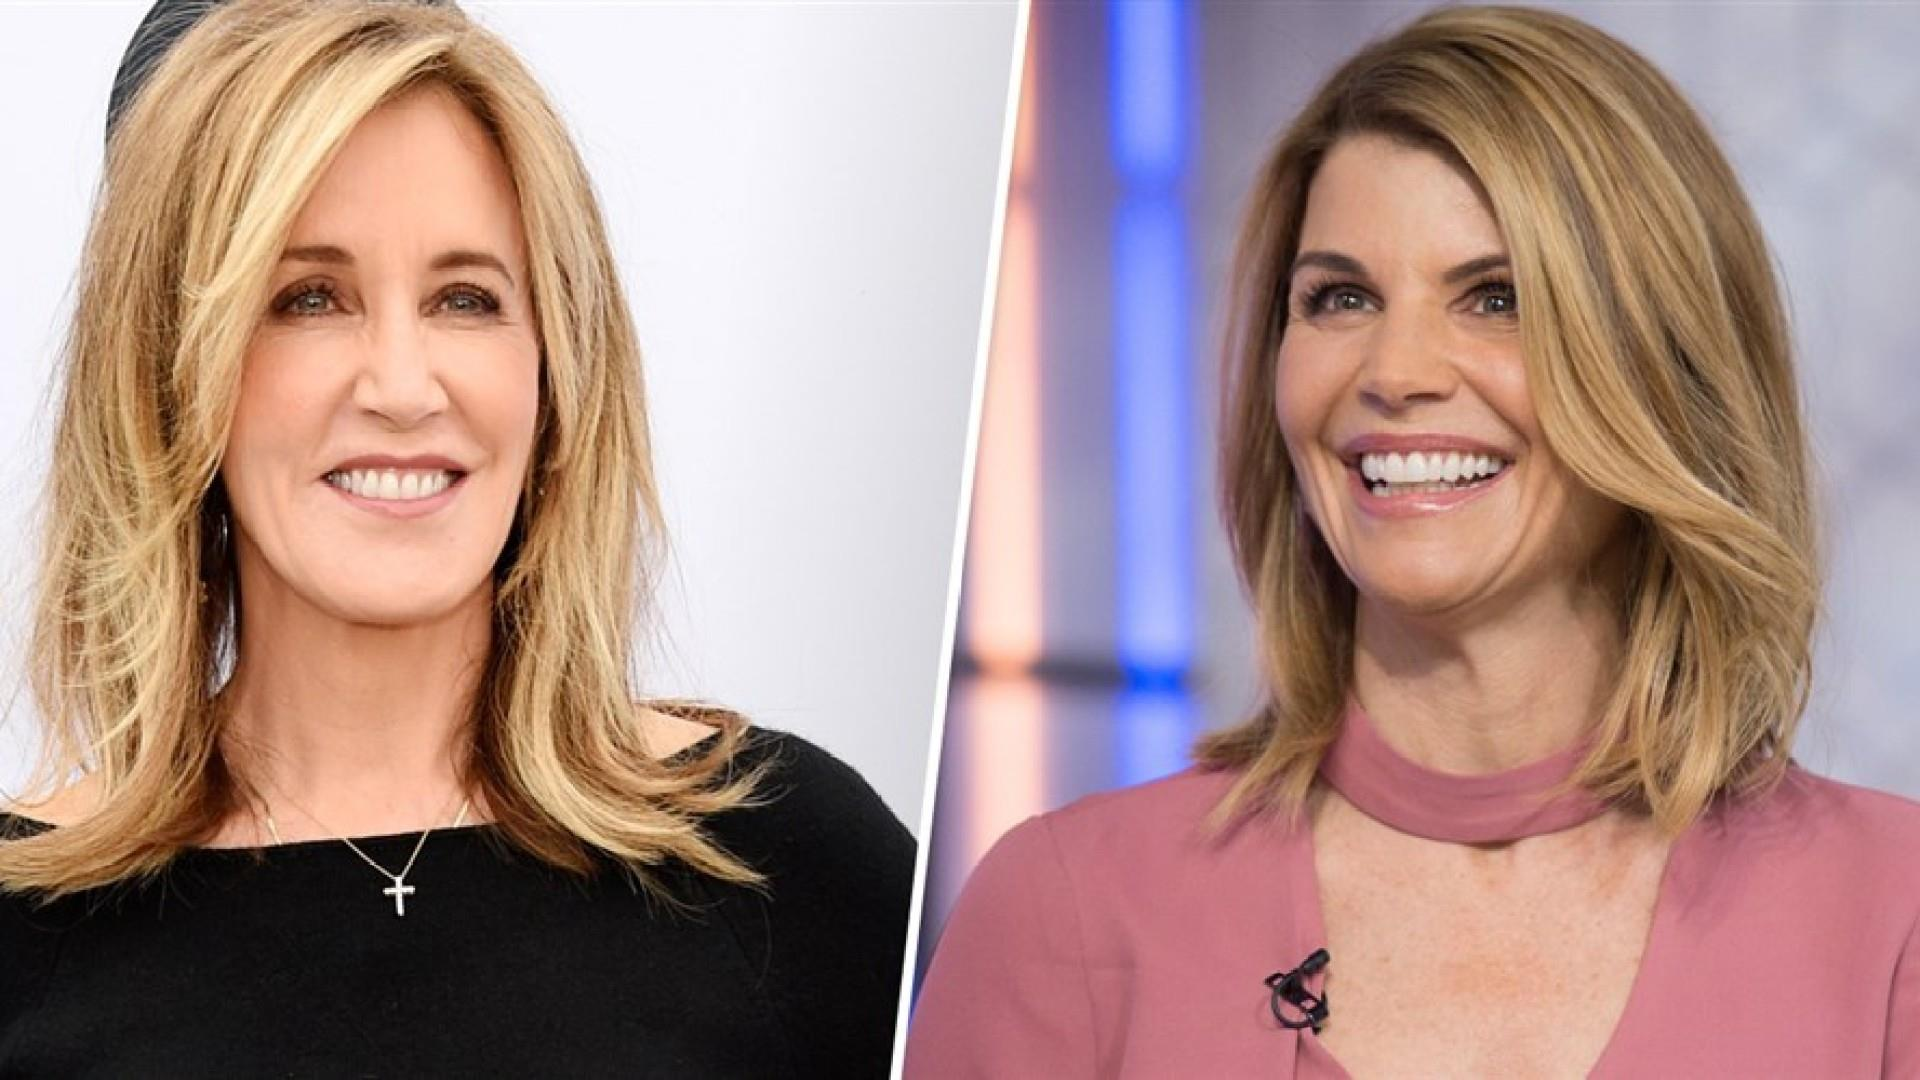 Felicity Huffman, Lori Loughlin charged in college exam cheating scheme